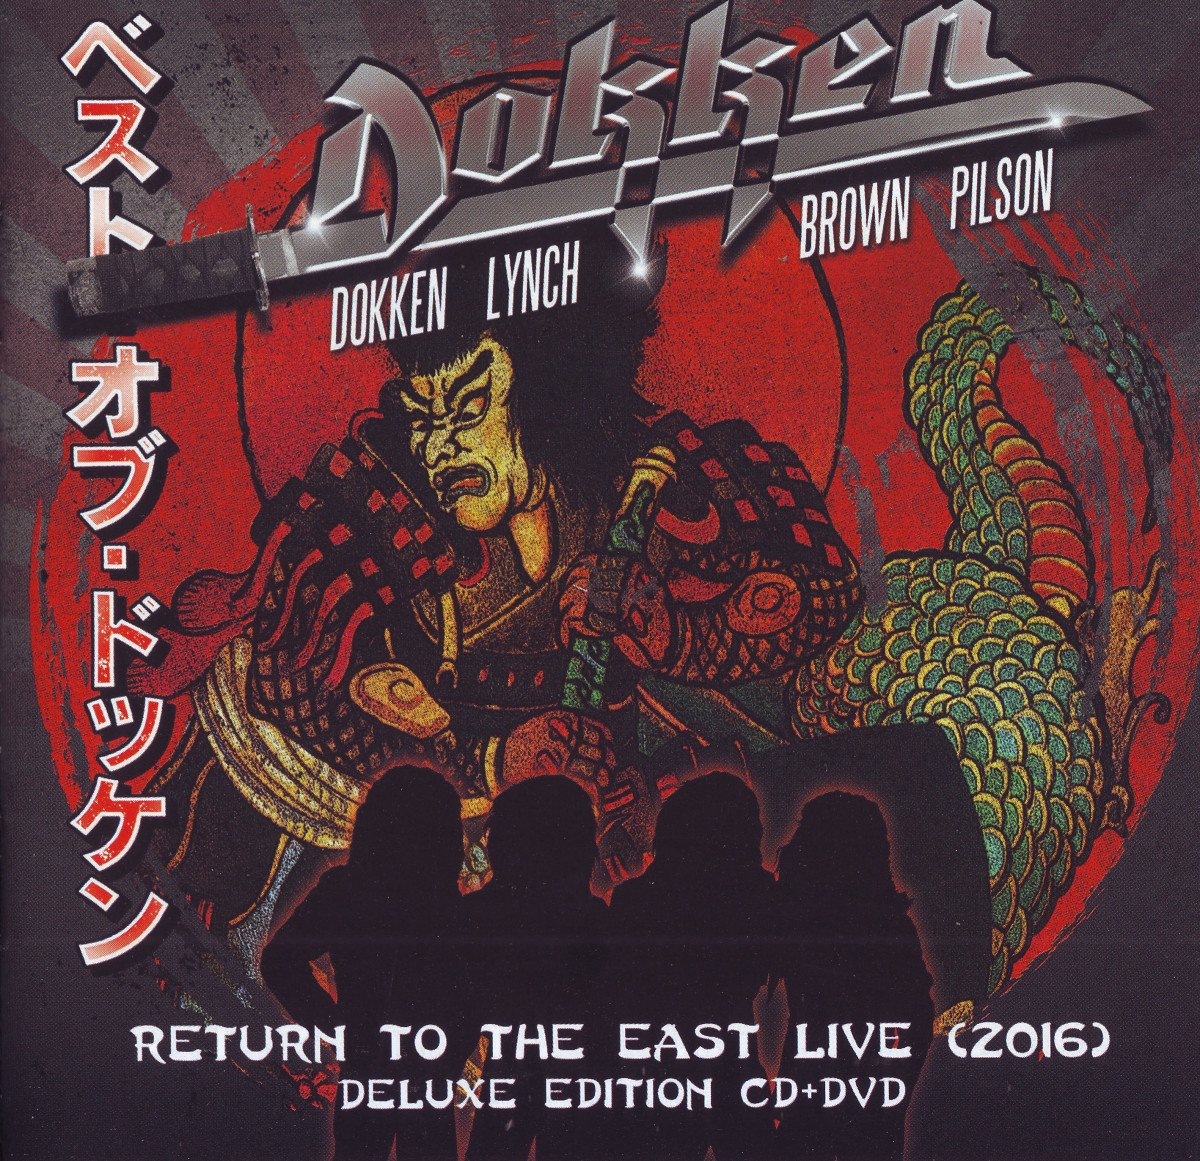 Return To The East Live 2016 by Frontiers Records